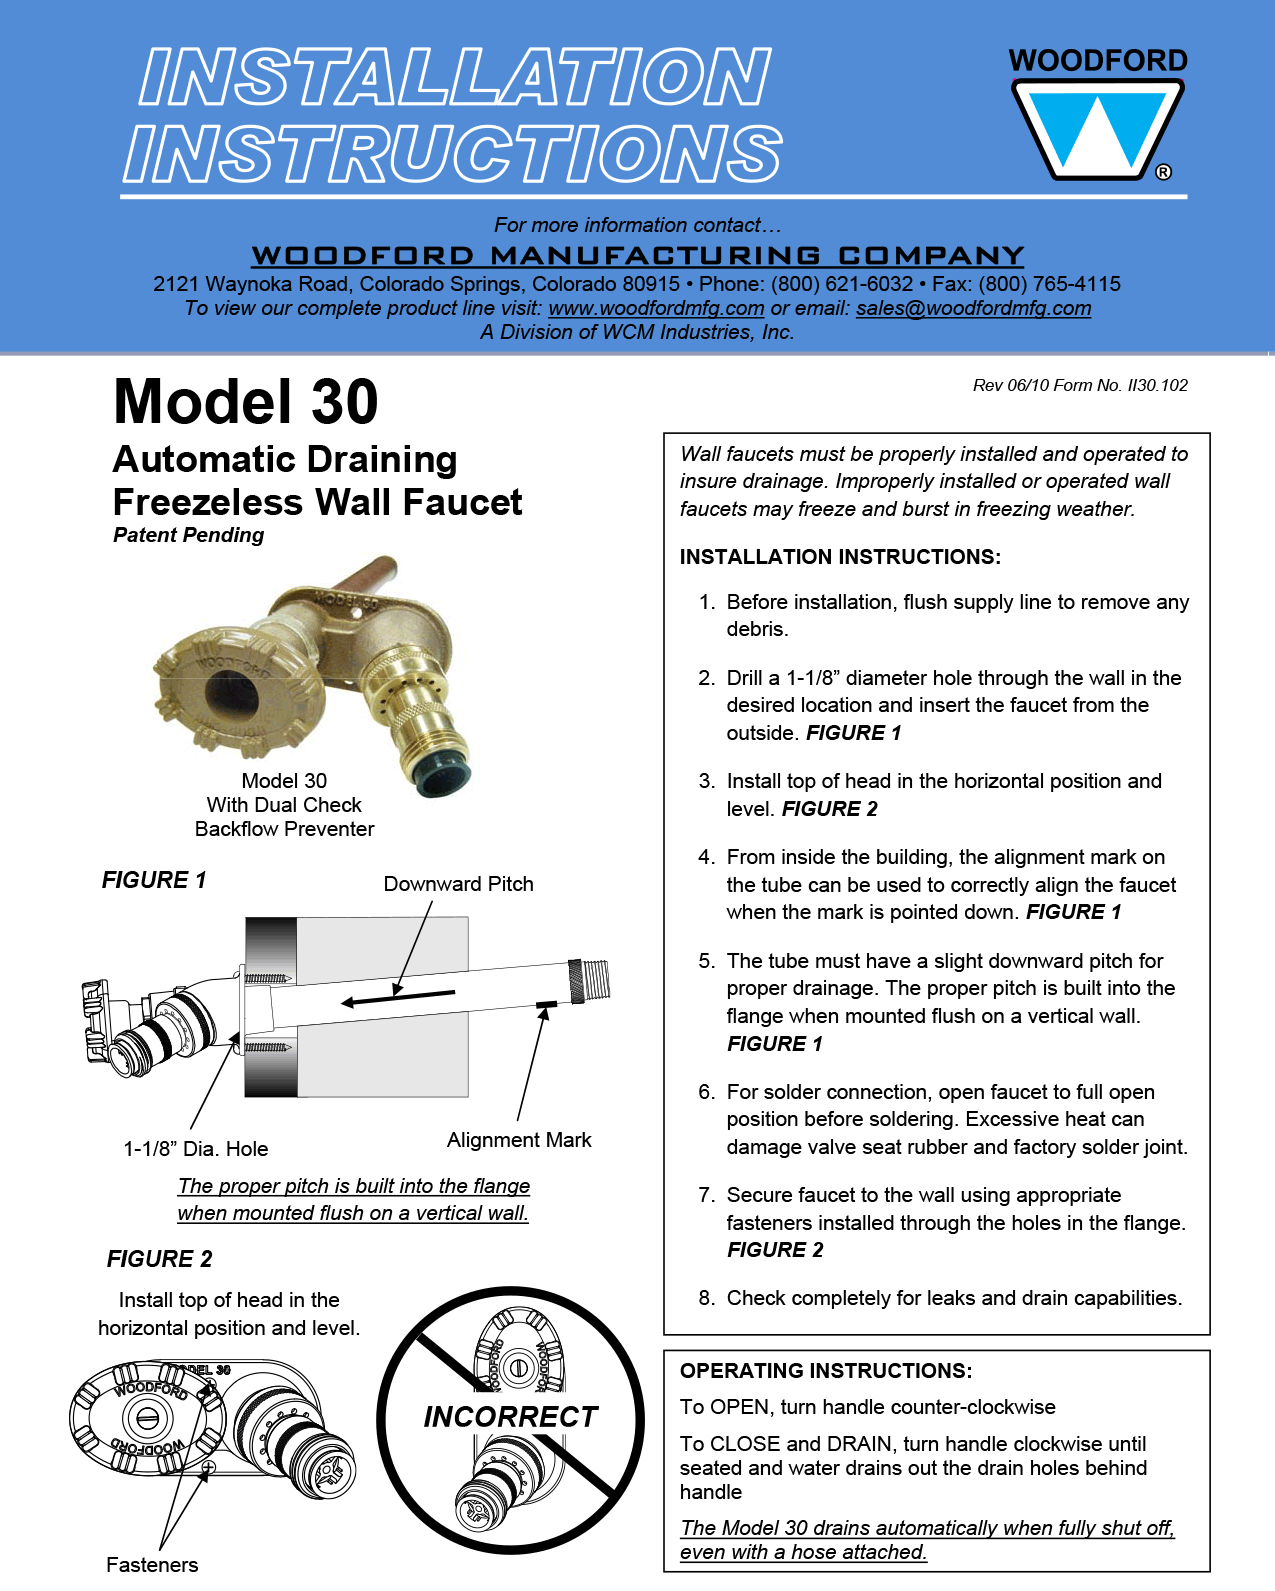 Woodford Model 30 Freezeless Faucet